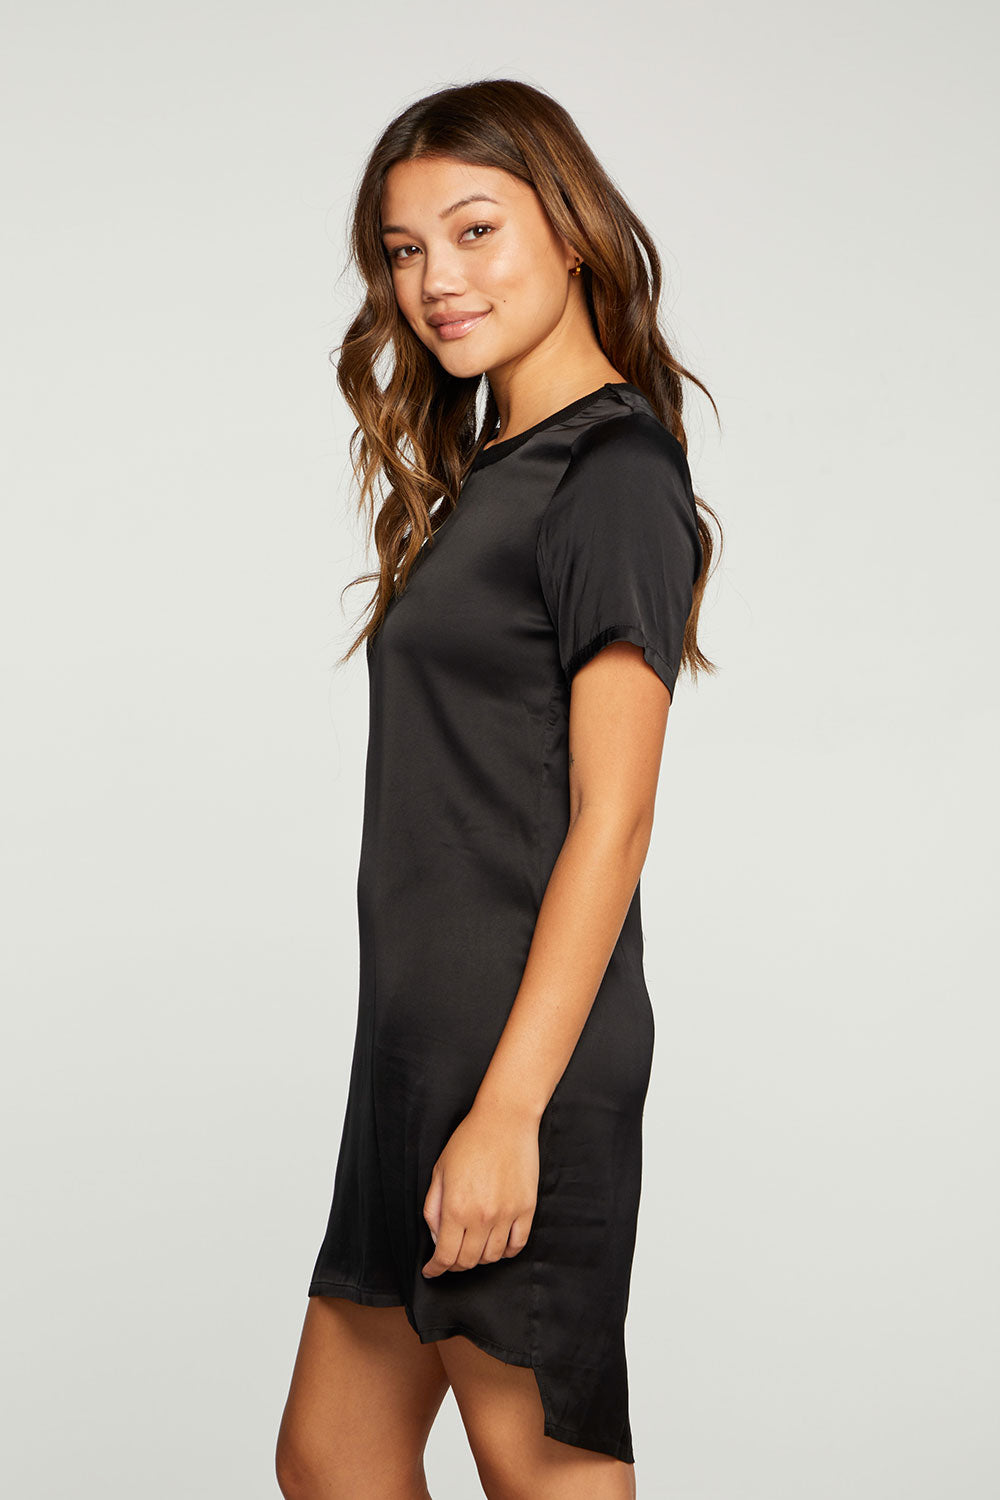 Stretch Silky Basics Short Sleeve Seamed Back Hi Lo Tee Dress WOMENS - chaserbrand